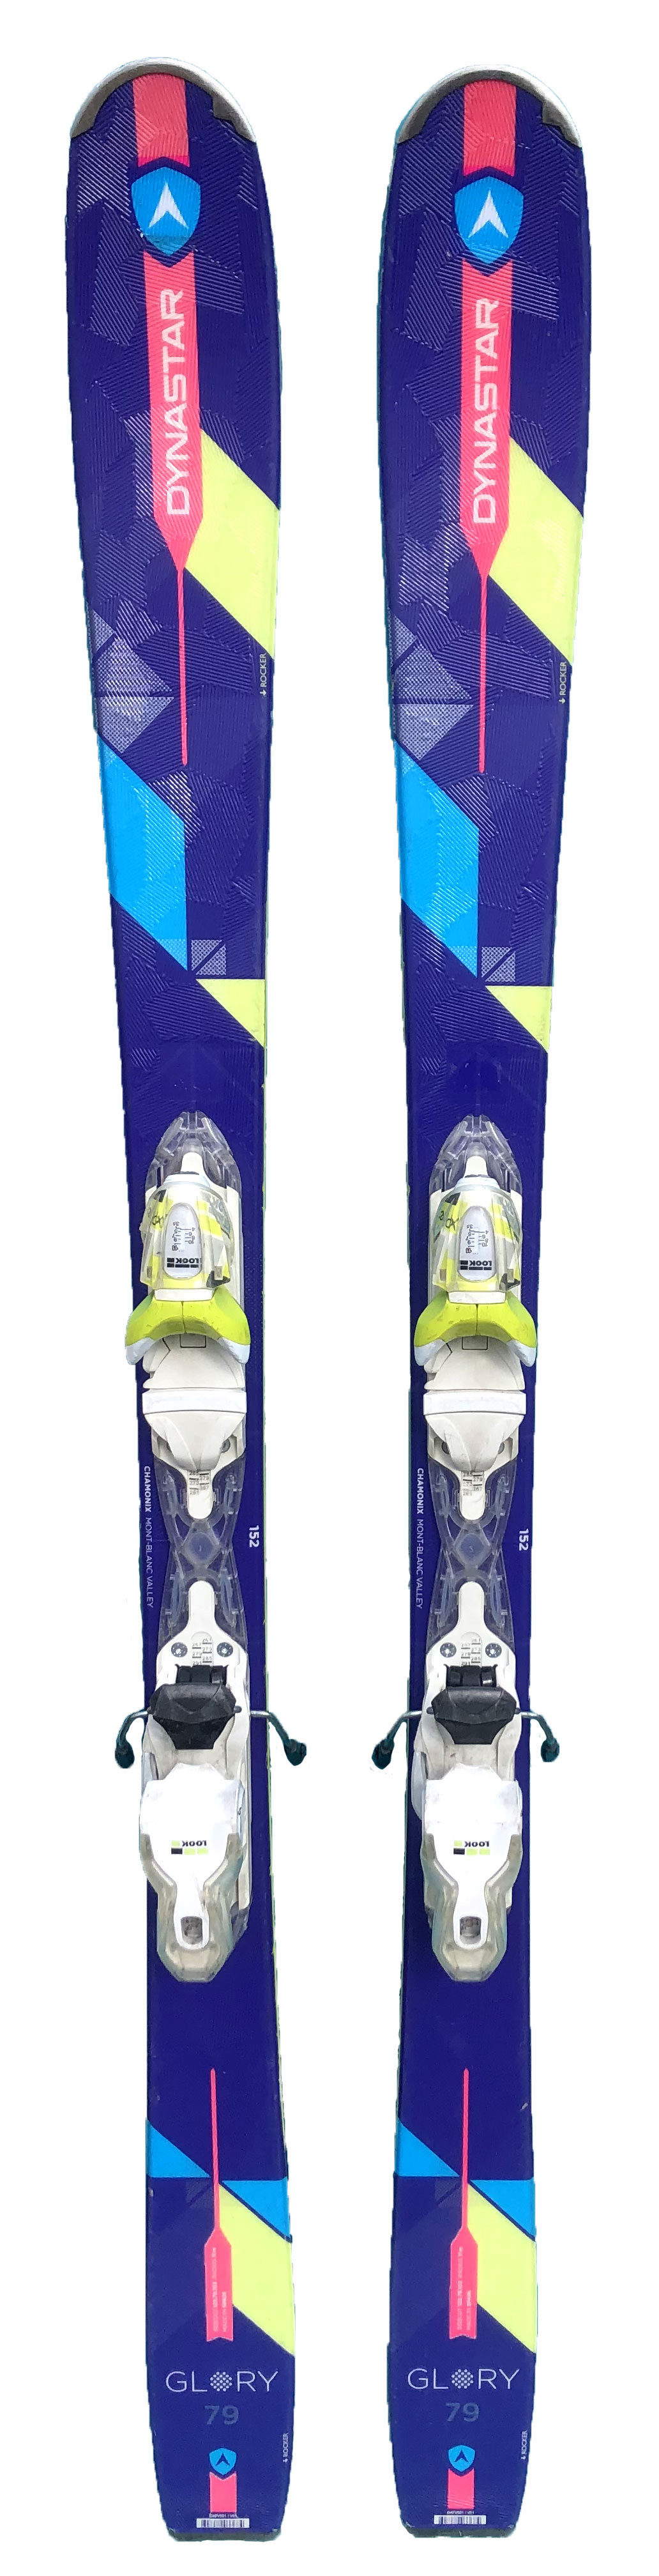 ski all mountain femme dynastar glory 79 occasion